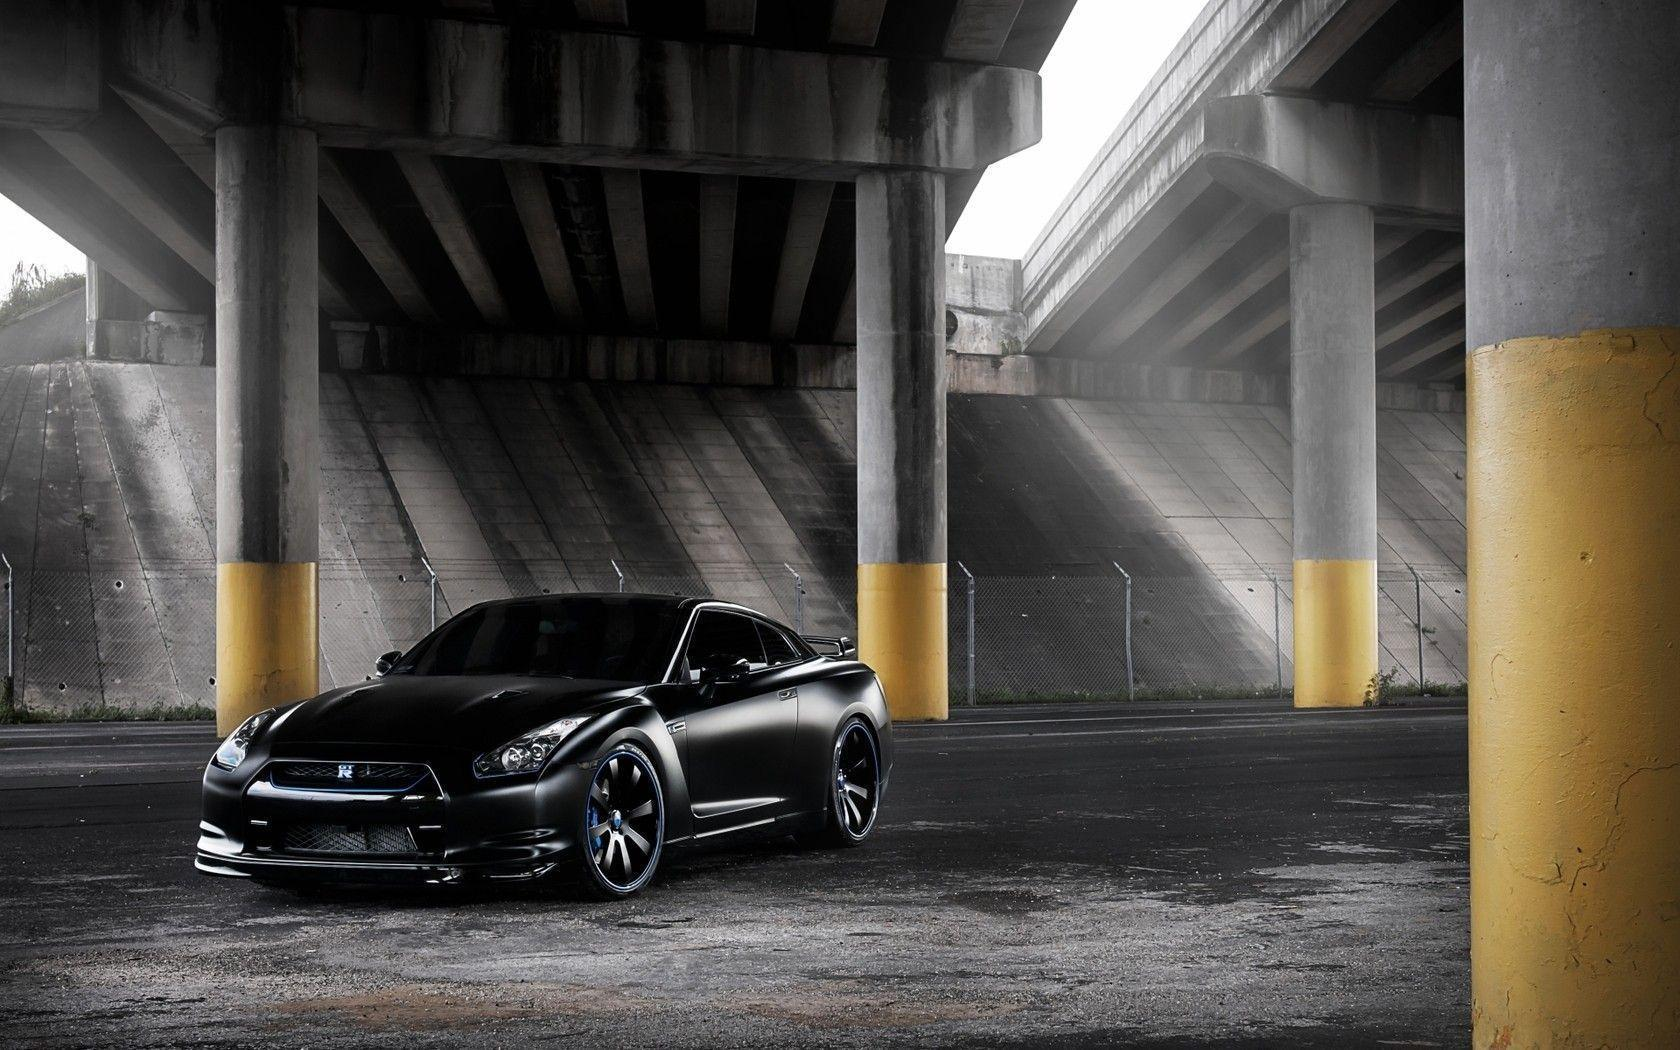 Daily Wallpaper: Flat Black Nissan GTR | I Like To Waste My Time